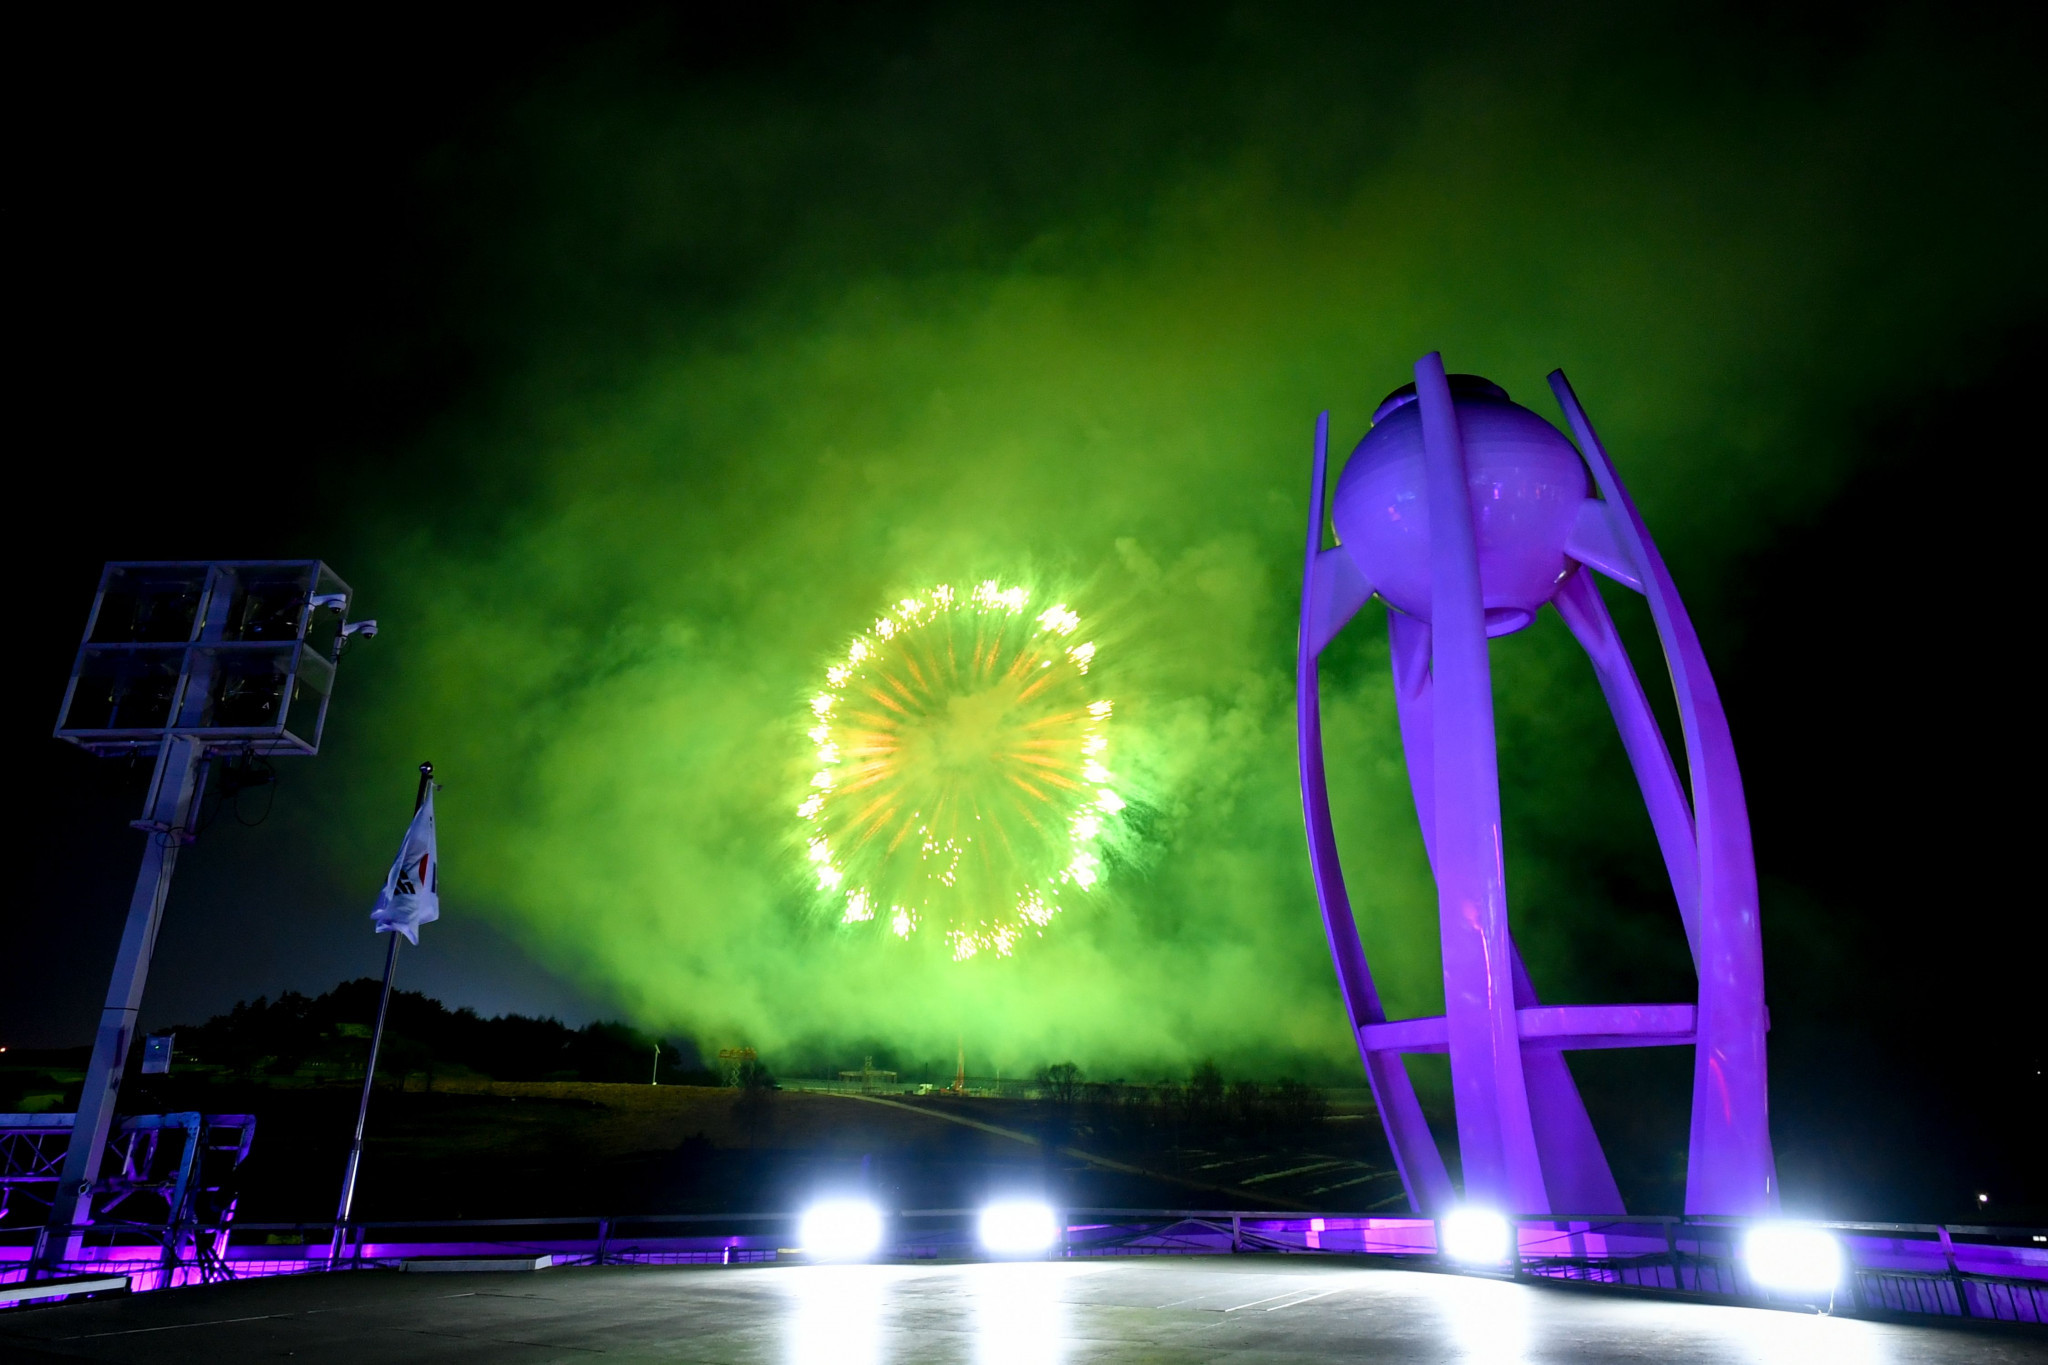 Bach hails Pyeongchang 2018 for showing new horizons before officially declaring Games closed